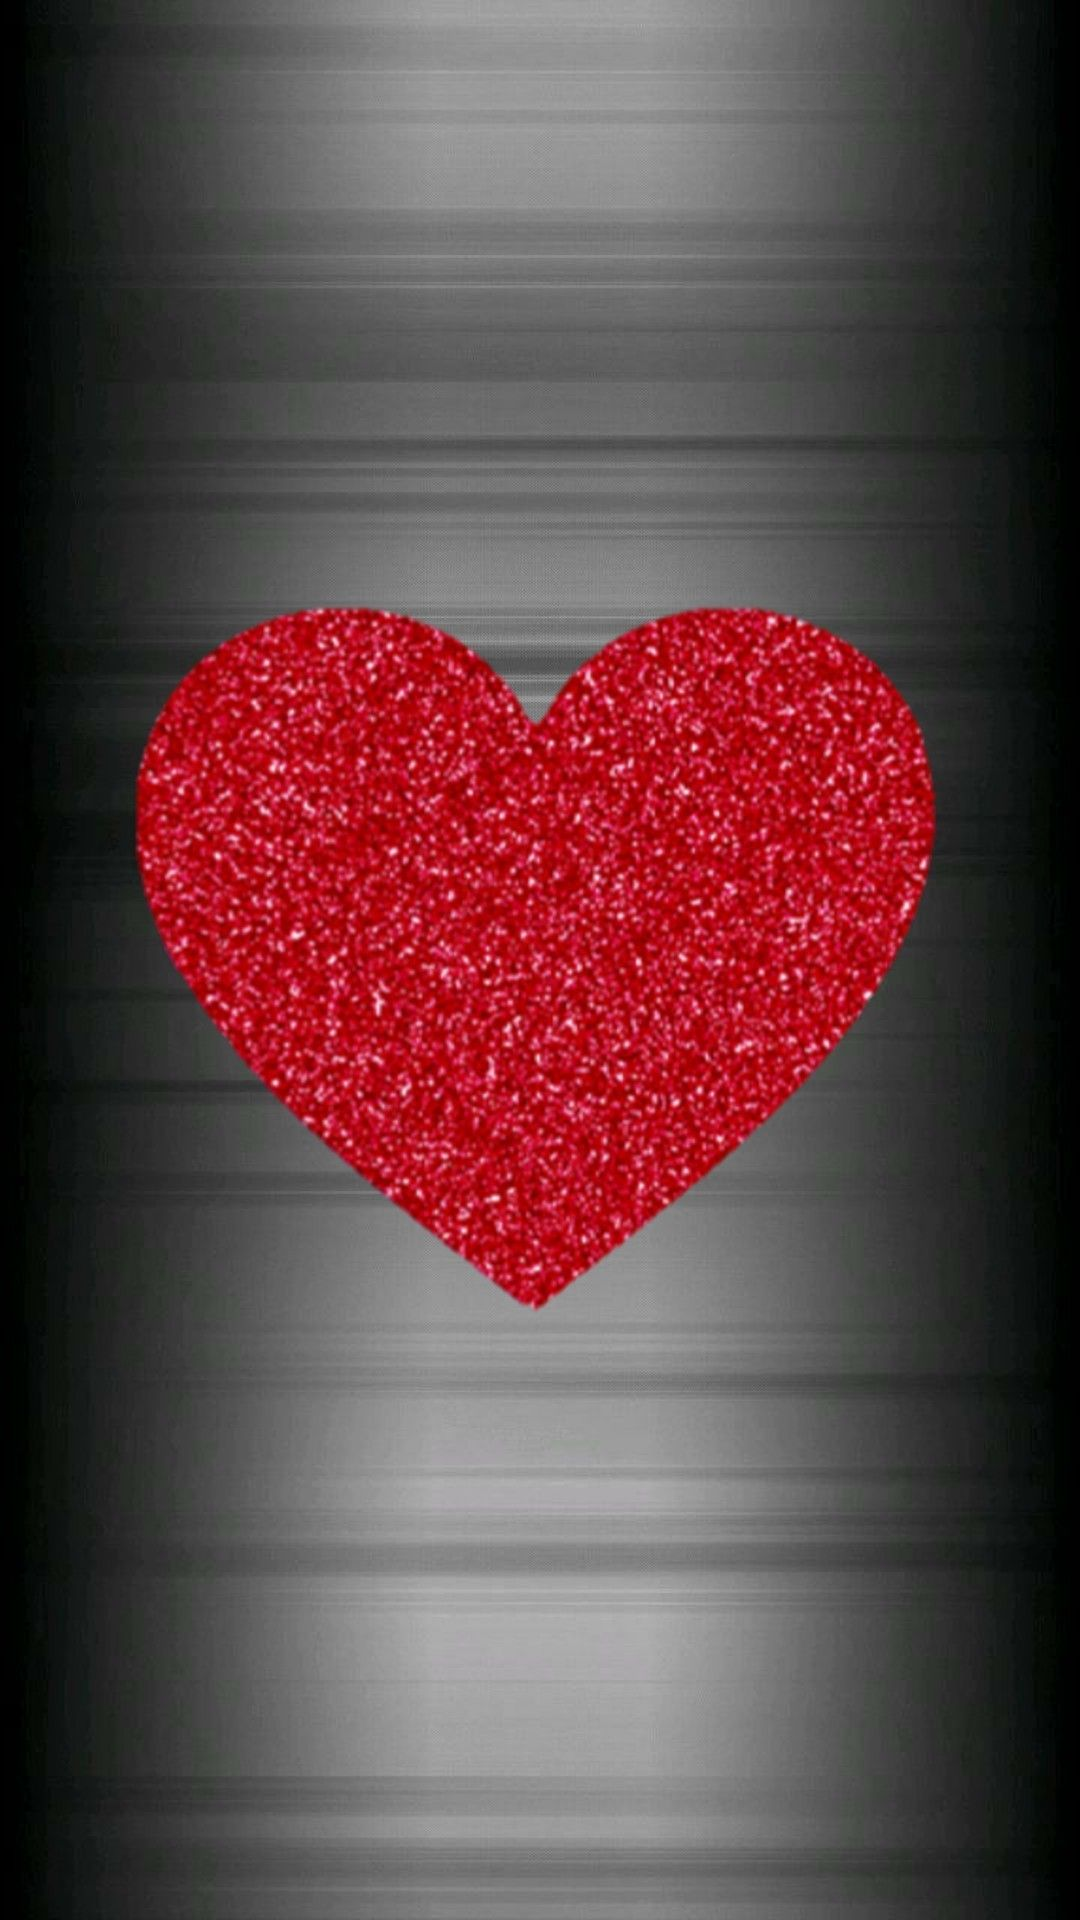 Pin By Kim Patty On Background Galore Heart Wallpaper Love Wallpaper Iphone Wallpaper